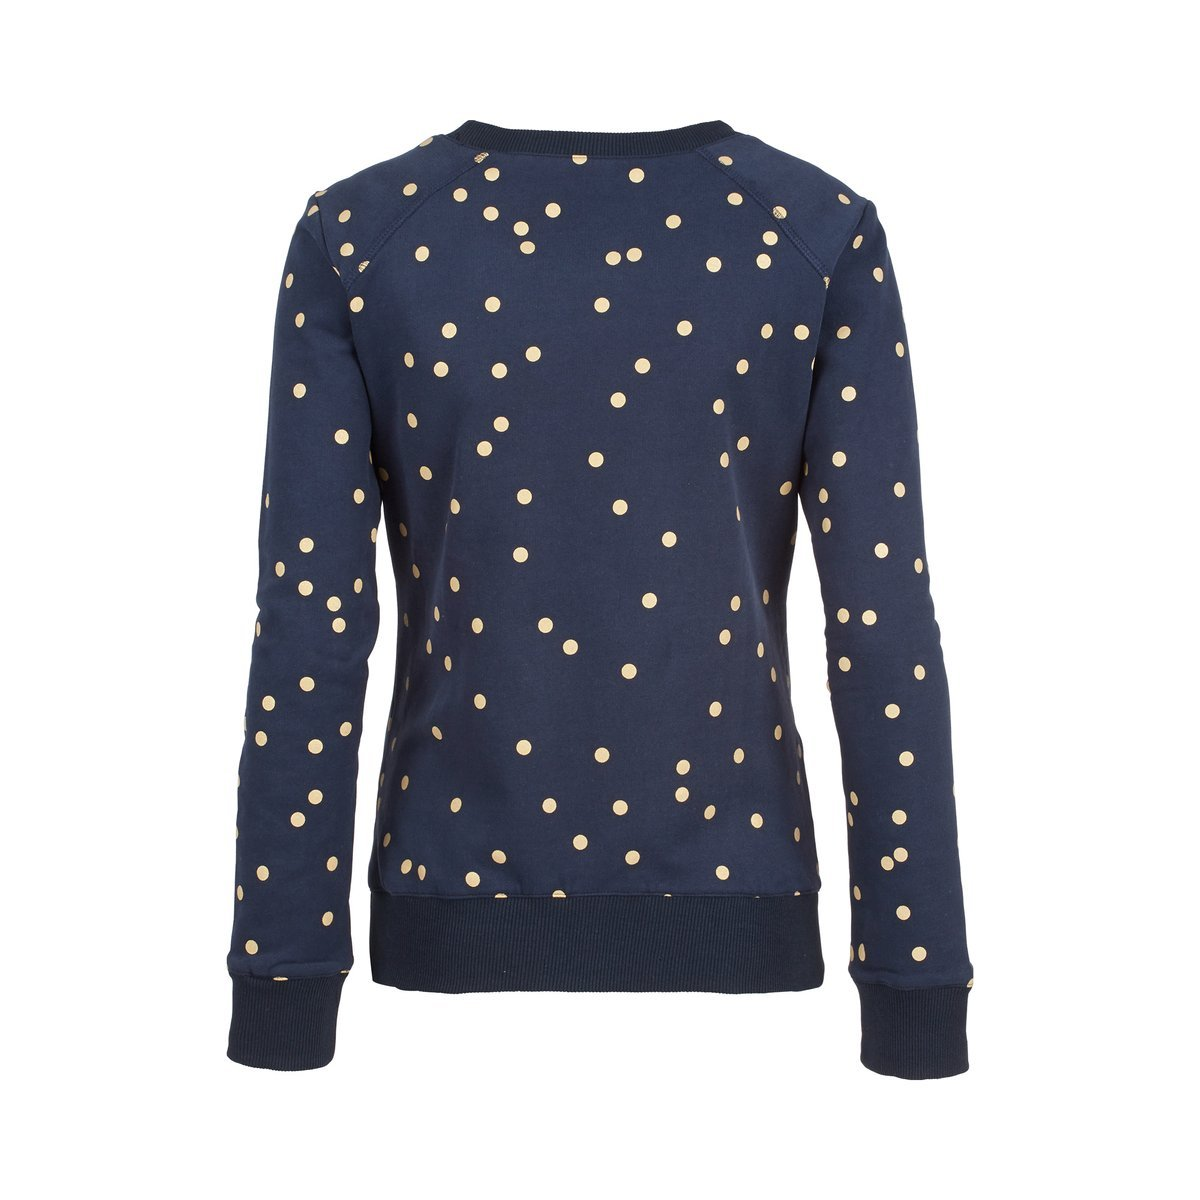 2HEARTS Umstands-Pullover Golden Dots